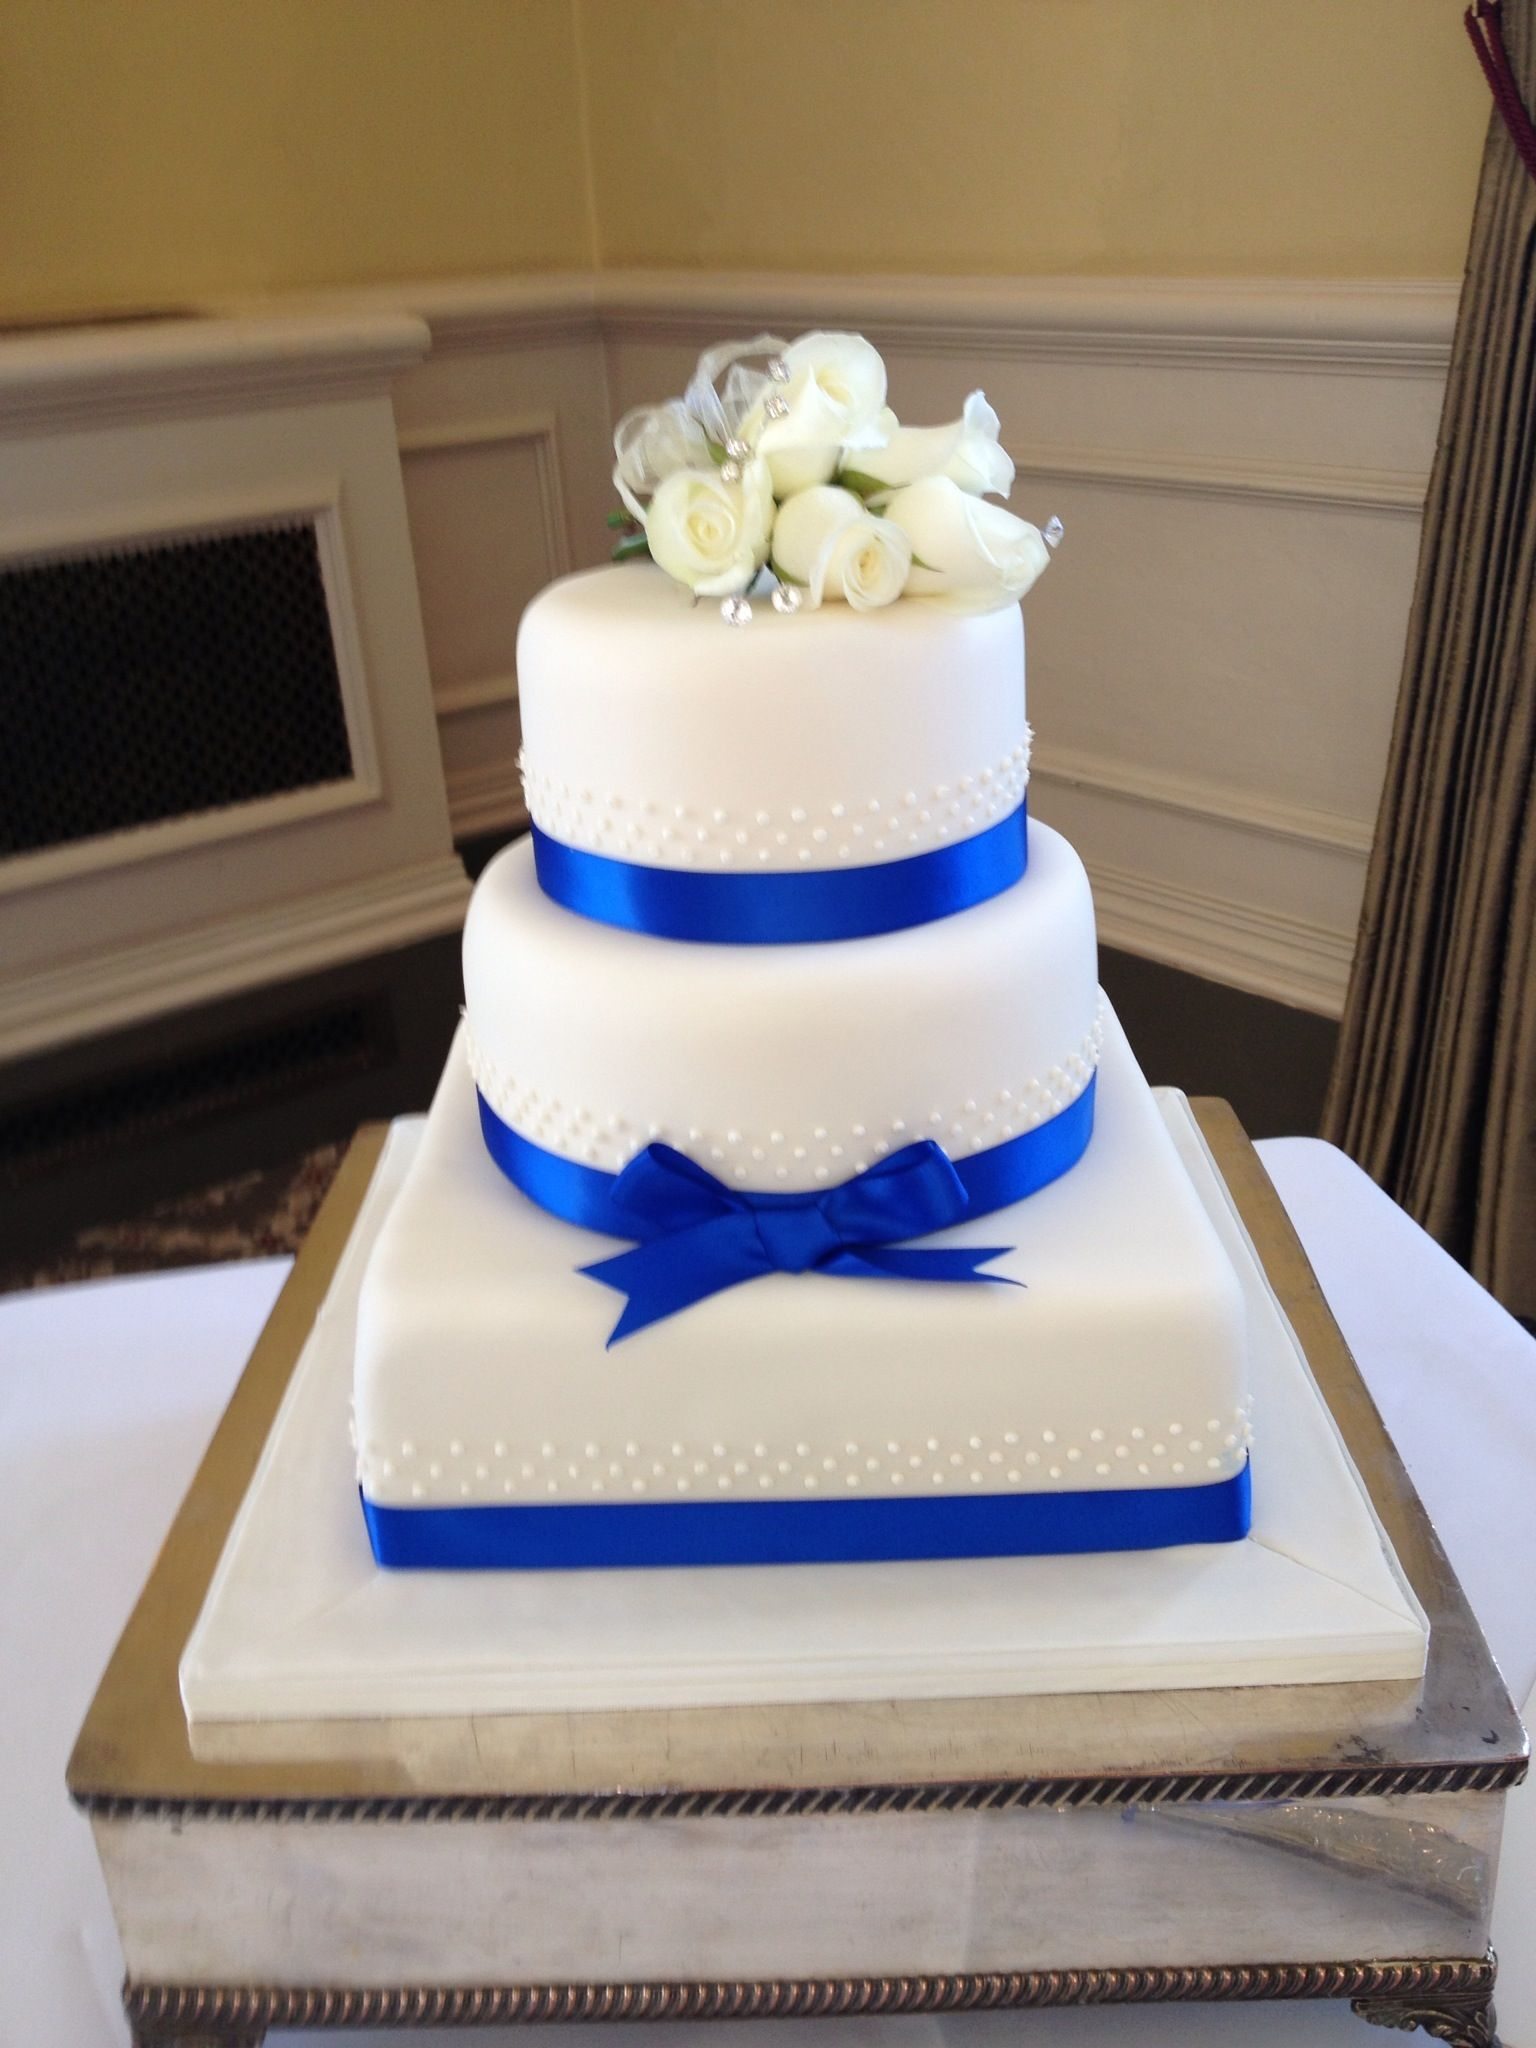 Royal Blue Wedding Invitations Minimalist Decoration On Cake Design